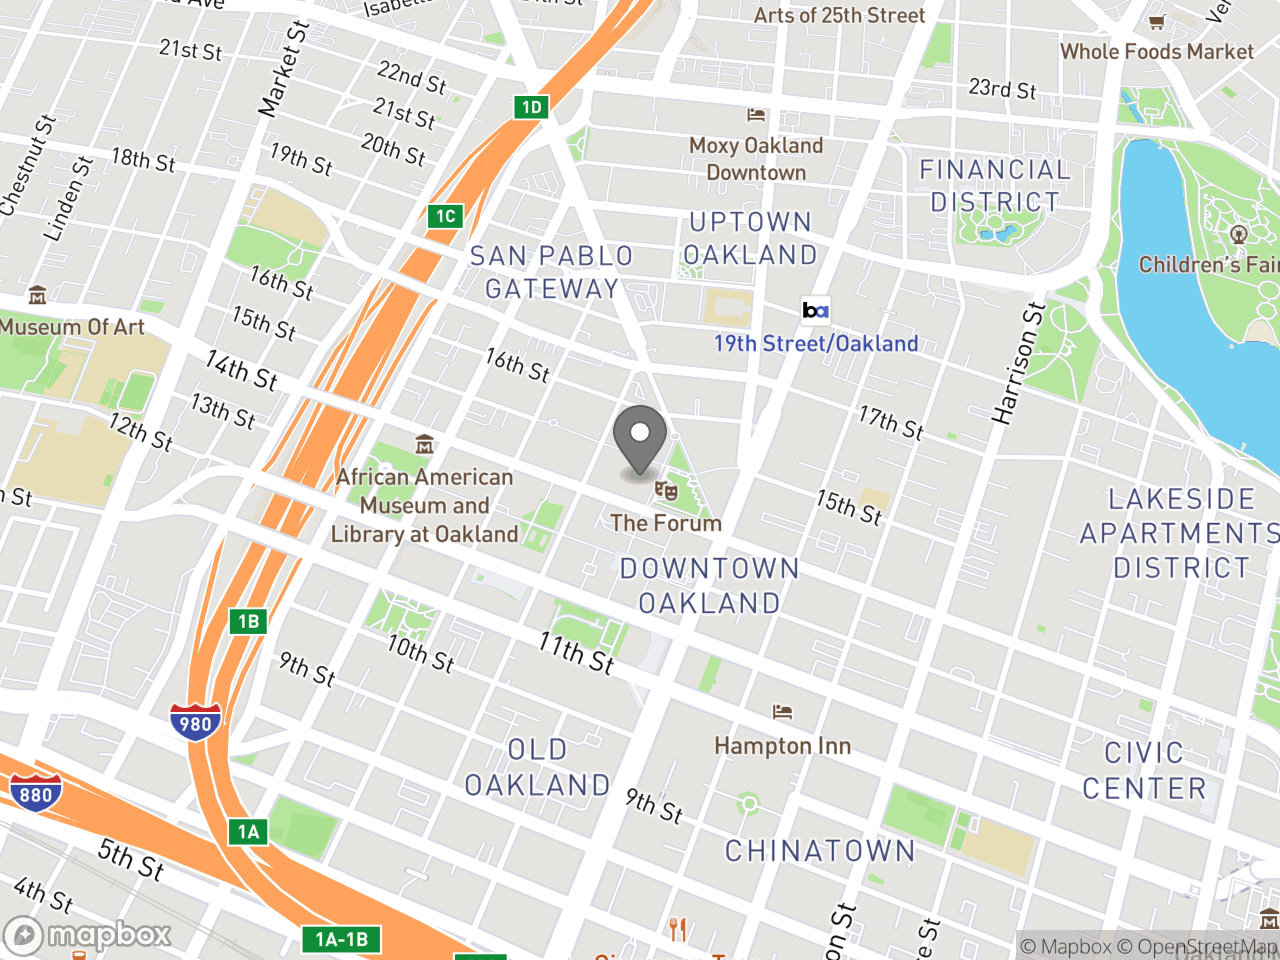 Map image for Mayor's Commission on Persons with Disabilities, October 15, 2018, located at 1 Frank H Ogawa Plaza in Oakland, CA 94612